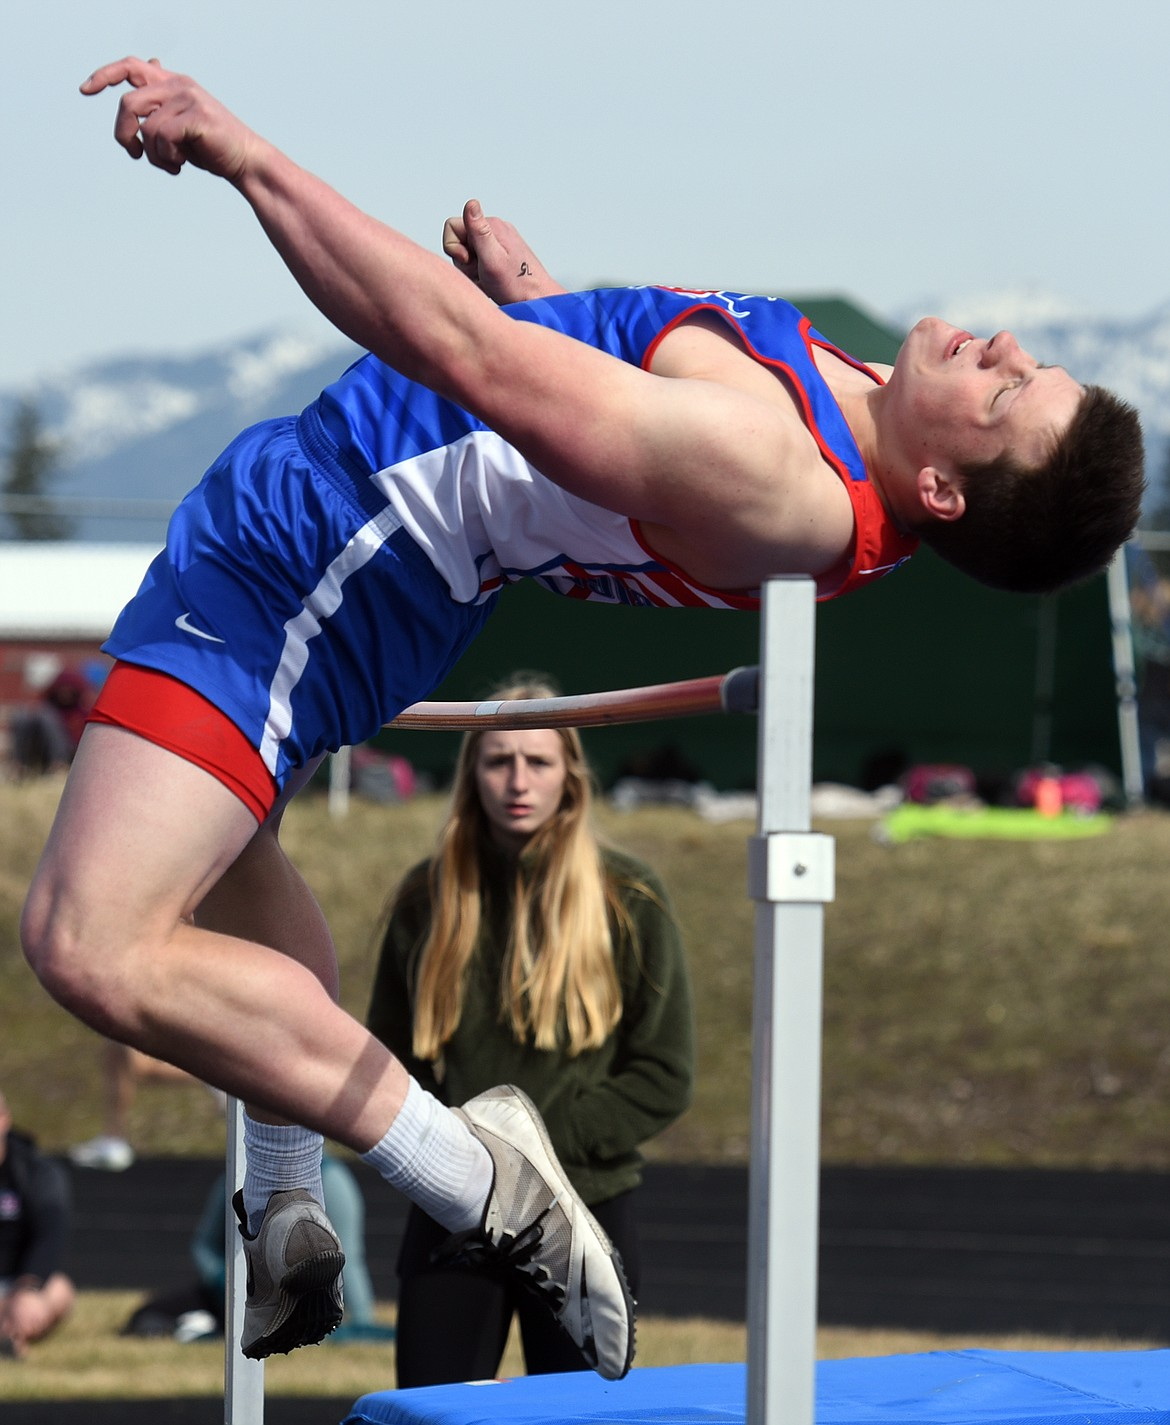 Levi Taylor finished fourth in the high jump after clearing 5 feet, 8 inches.